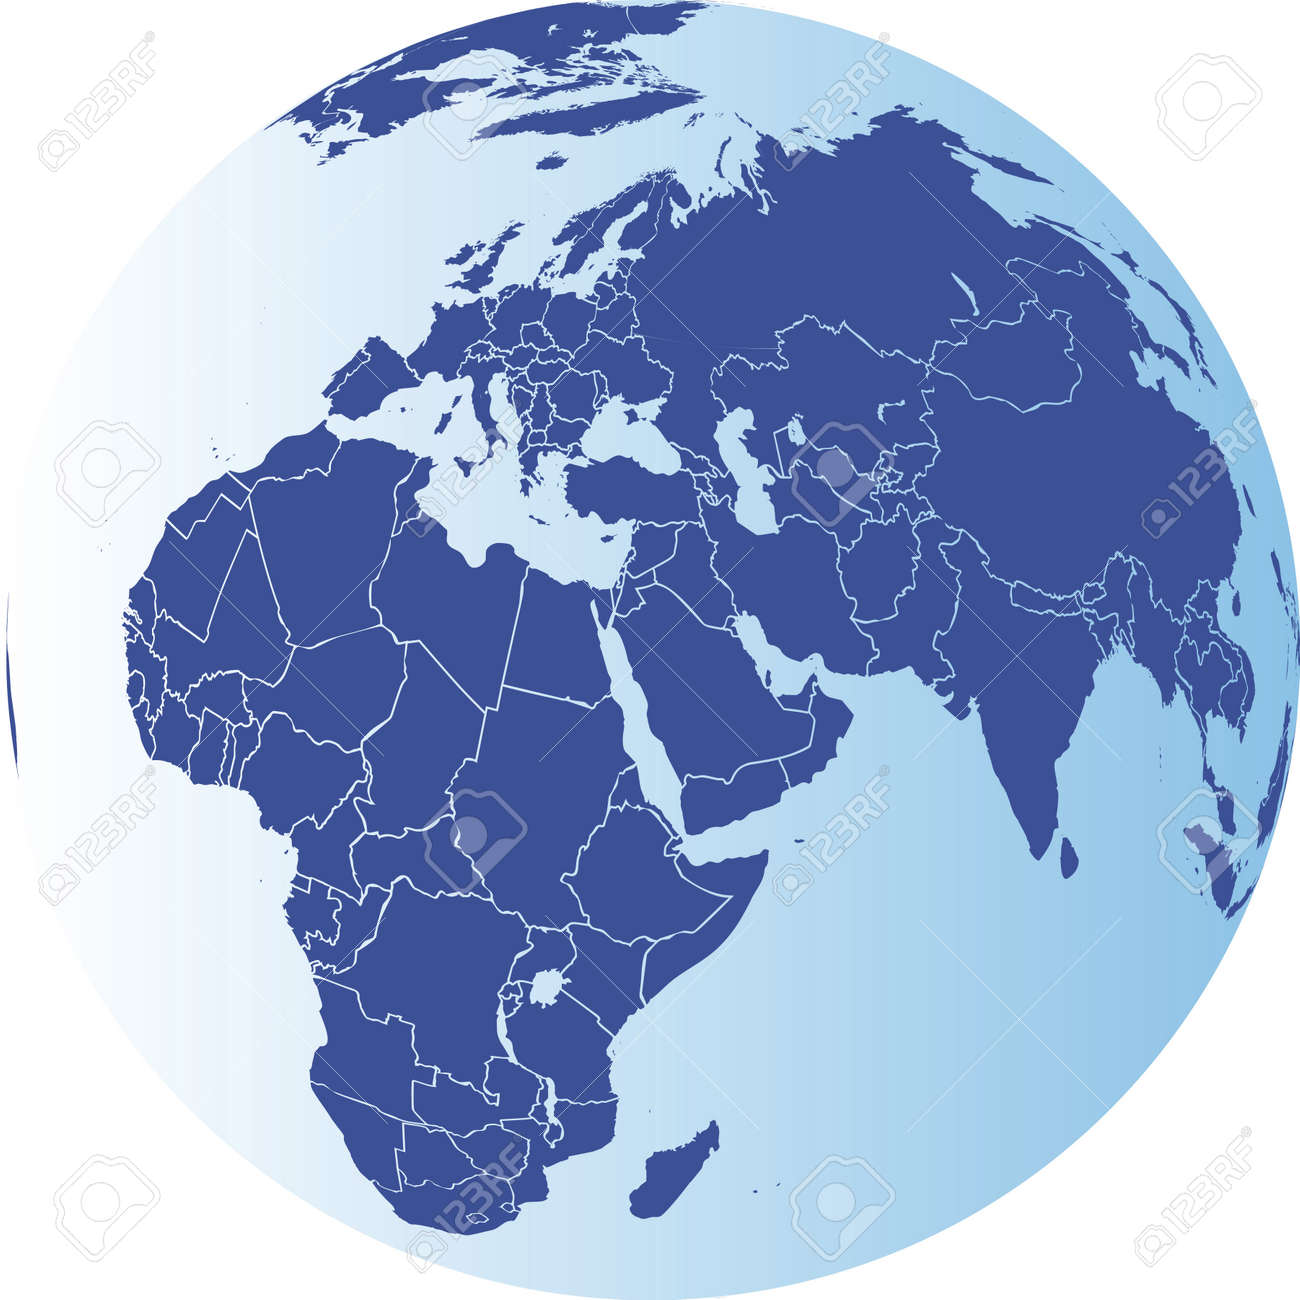 europe africa and asia globe vector file elements of this image furnished